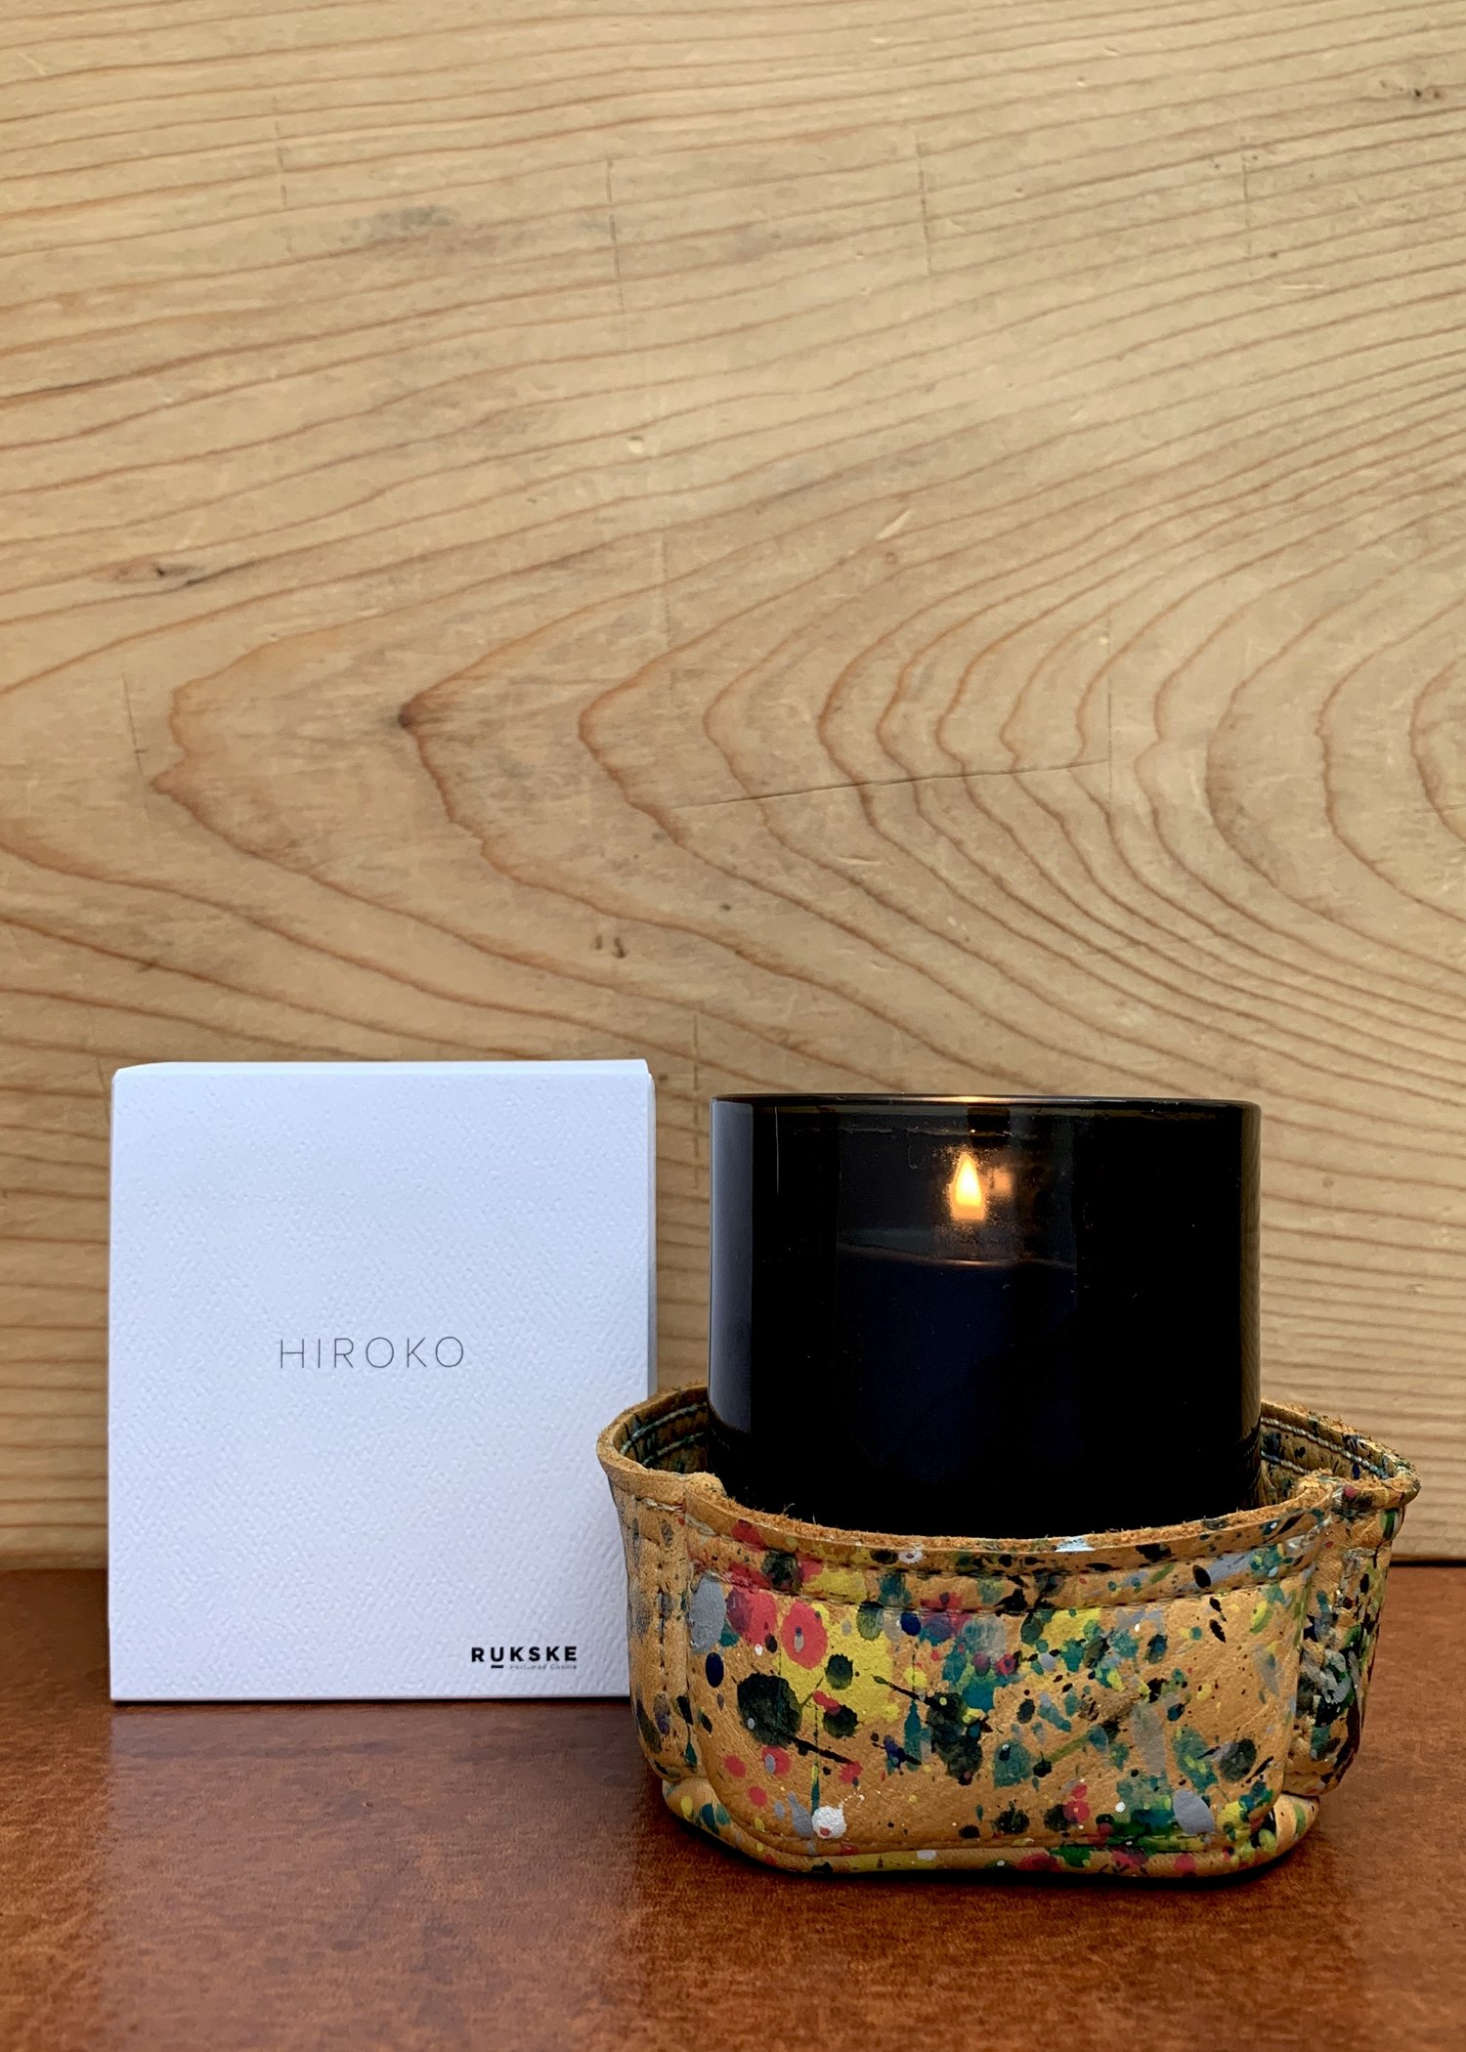 Some of us at Remodelista are not enamored of cloying floral scented candles; for the desert-minded, we are in favor of the Rukske Hiroko Candle ($60) from RTH in LA, an incense-inspired fragrance with herb, citrus, patchouli, and woody notes.